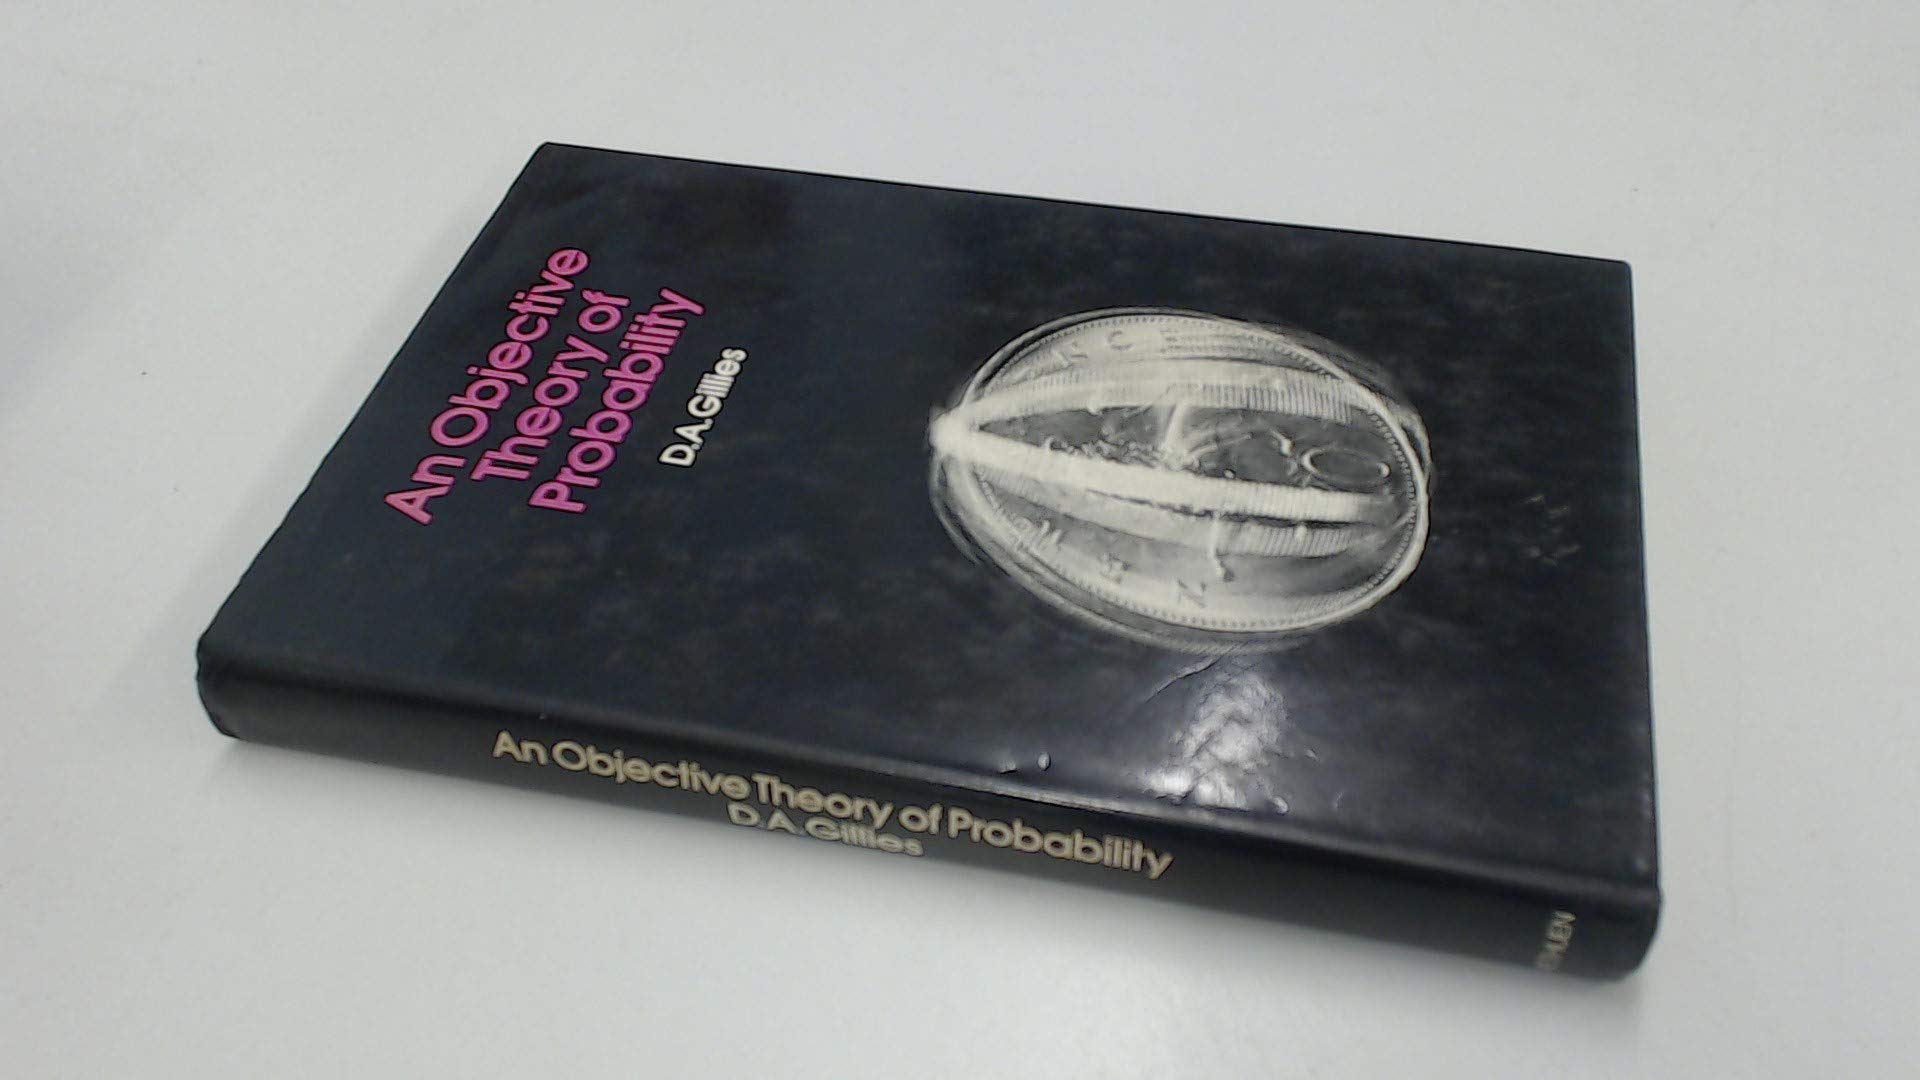 An Objective Theory of Probability (Routledge Revivals): Volume 2